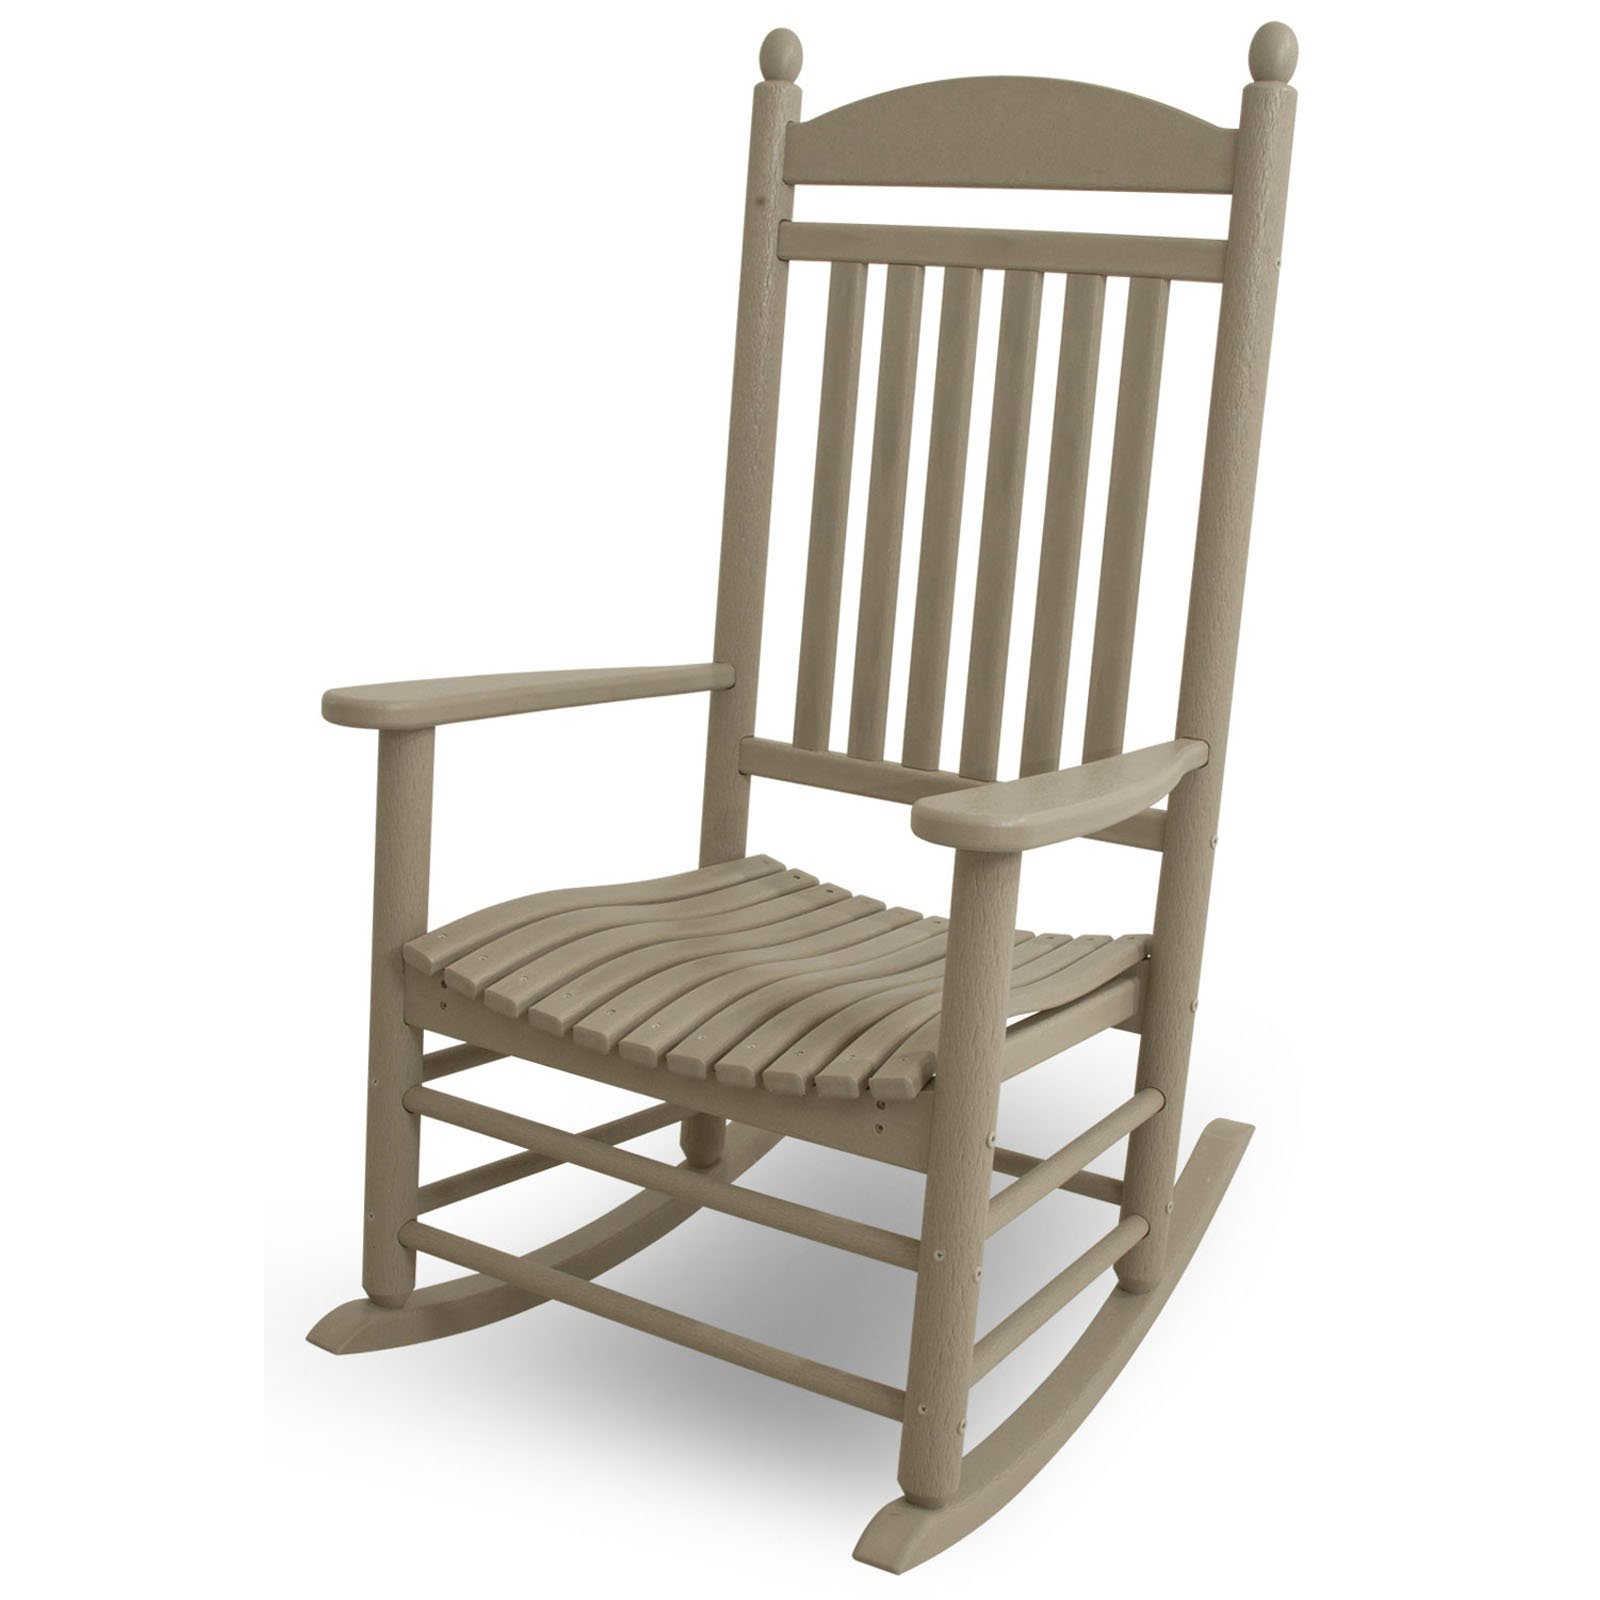 Best Place To Buy Rocking Chairs Polywood Jefferson Recycled Plastic Rocking Chair